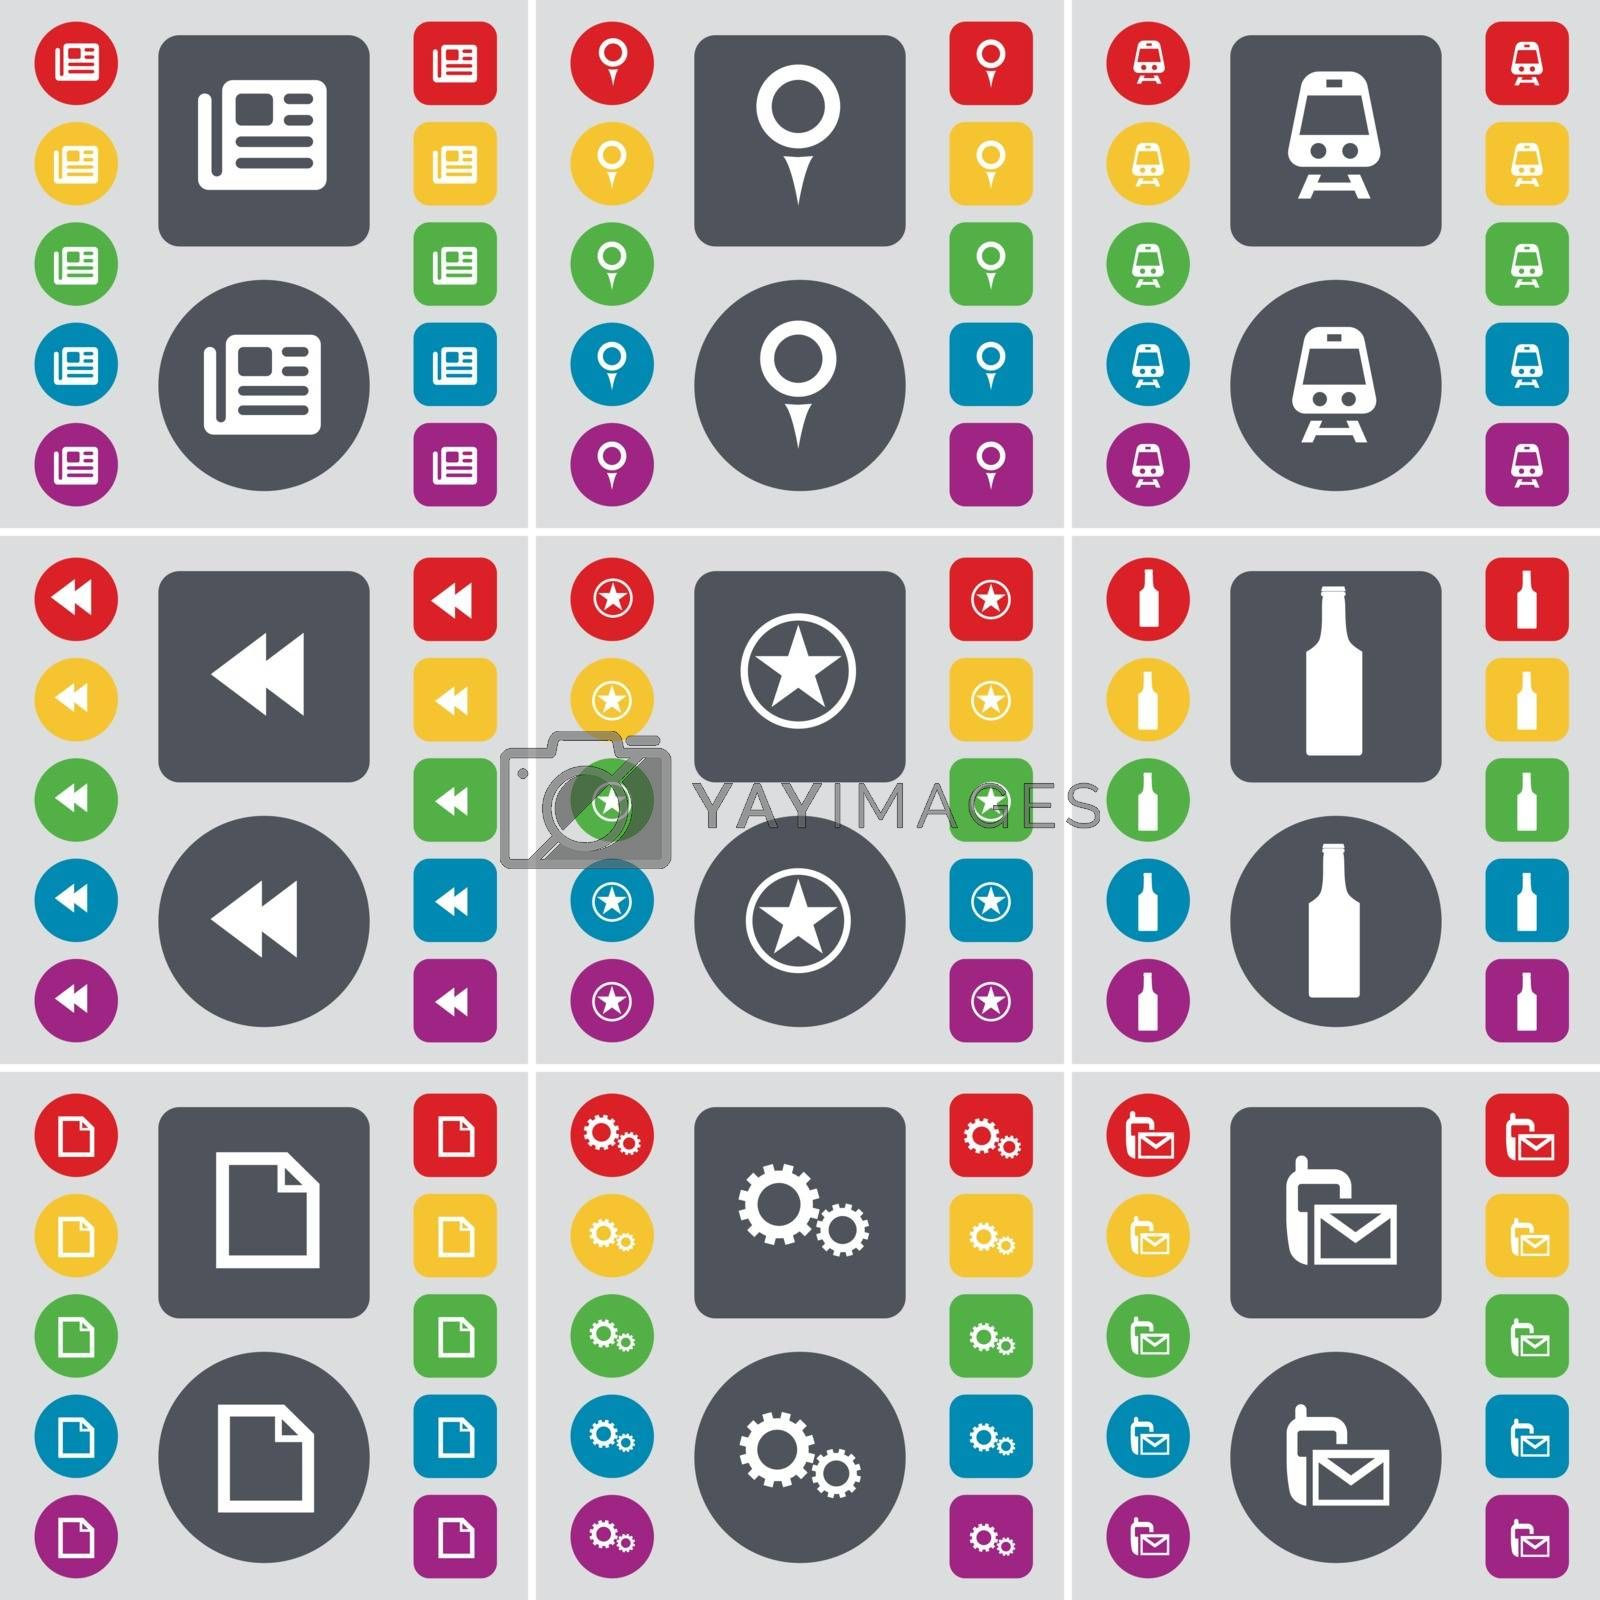 Royalty free image of Newspaper, Checkpoint, Train, Rewind, Star, Bottle, File, Gear, SMS icon symbol. A large set of flat, colored buttons for your design. Vector by serhii_lohvyniuk